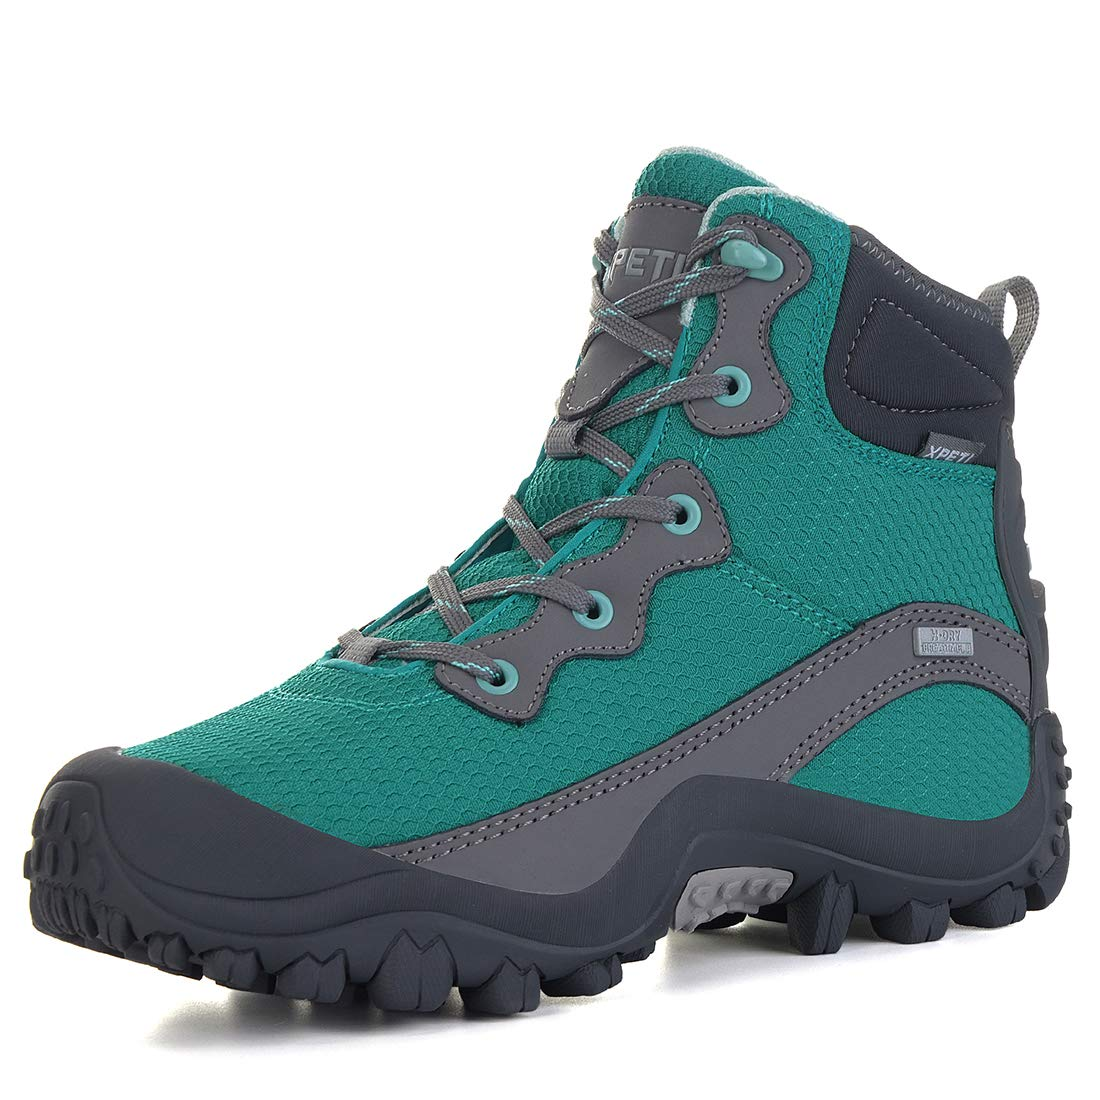 XPETI Women's Dimo Mid Waterproof Hiking Outdoor Boot (10.5 B(M) US, Green) by XPETI